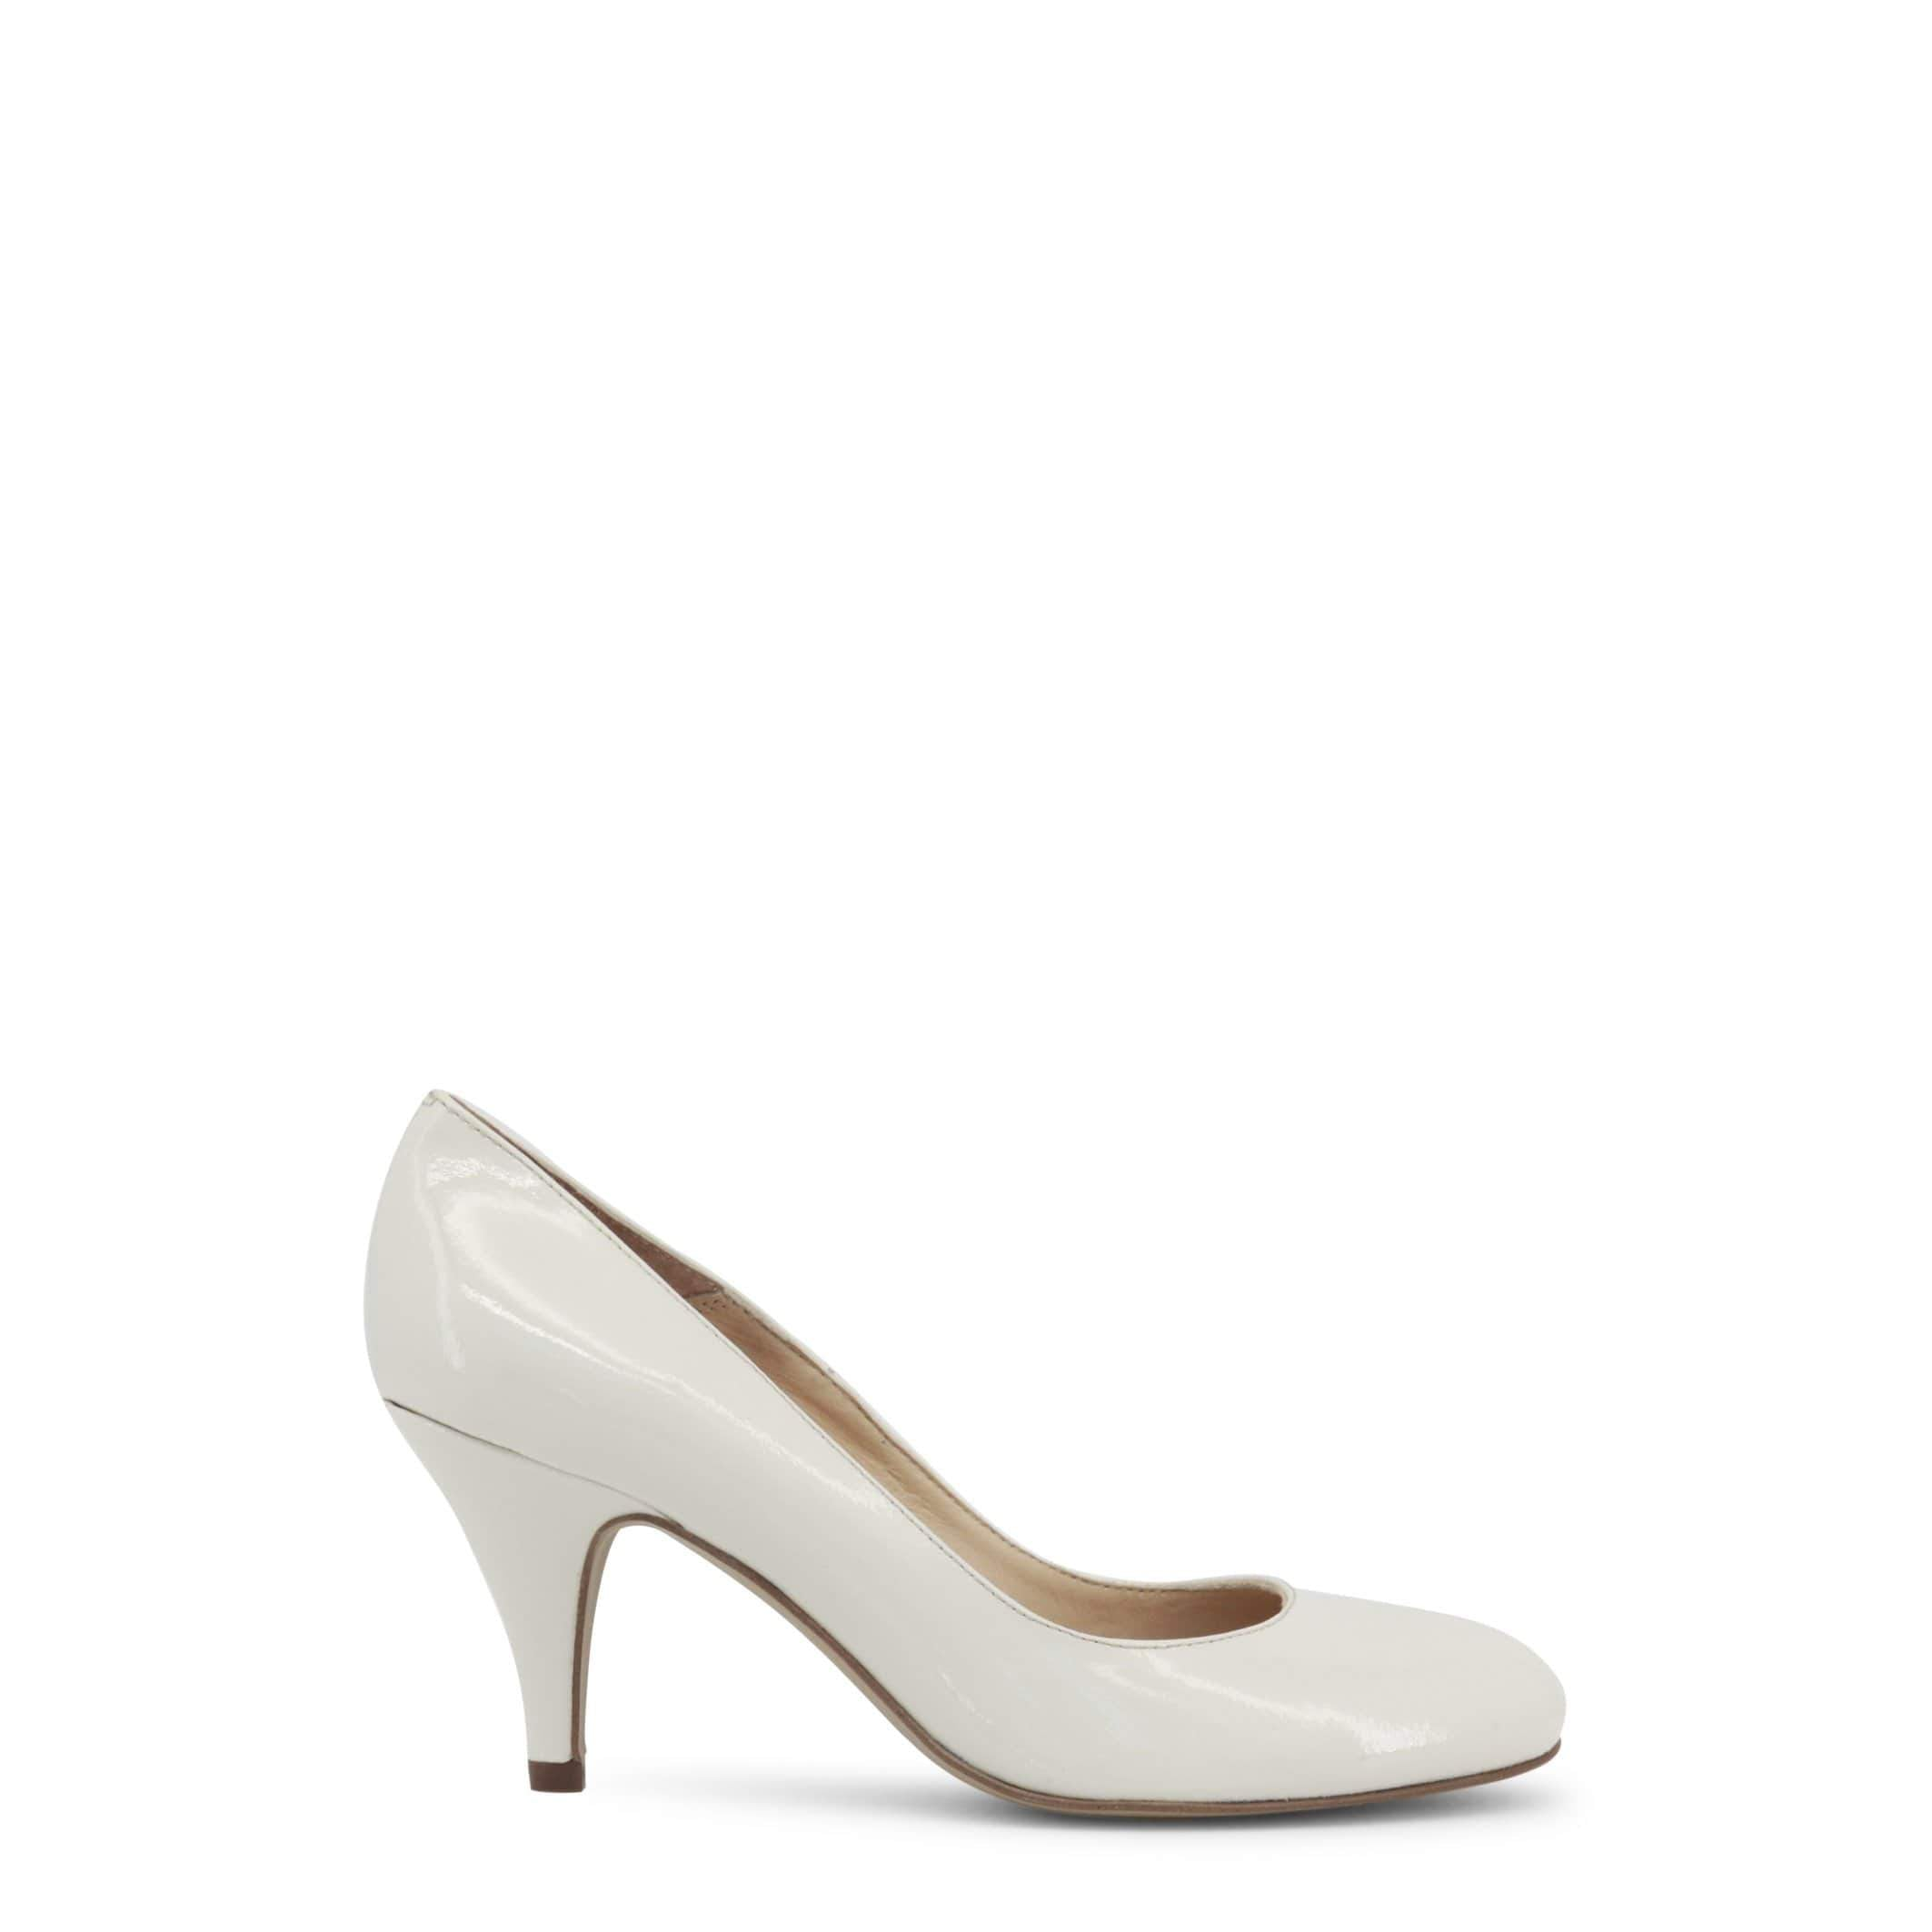 Arnaldo Toscani Shoes Pumps & Heels white-1 / EU 40 Arnaldo Toscani - 7181101